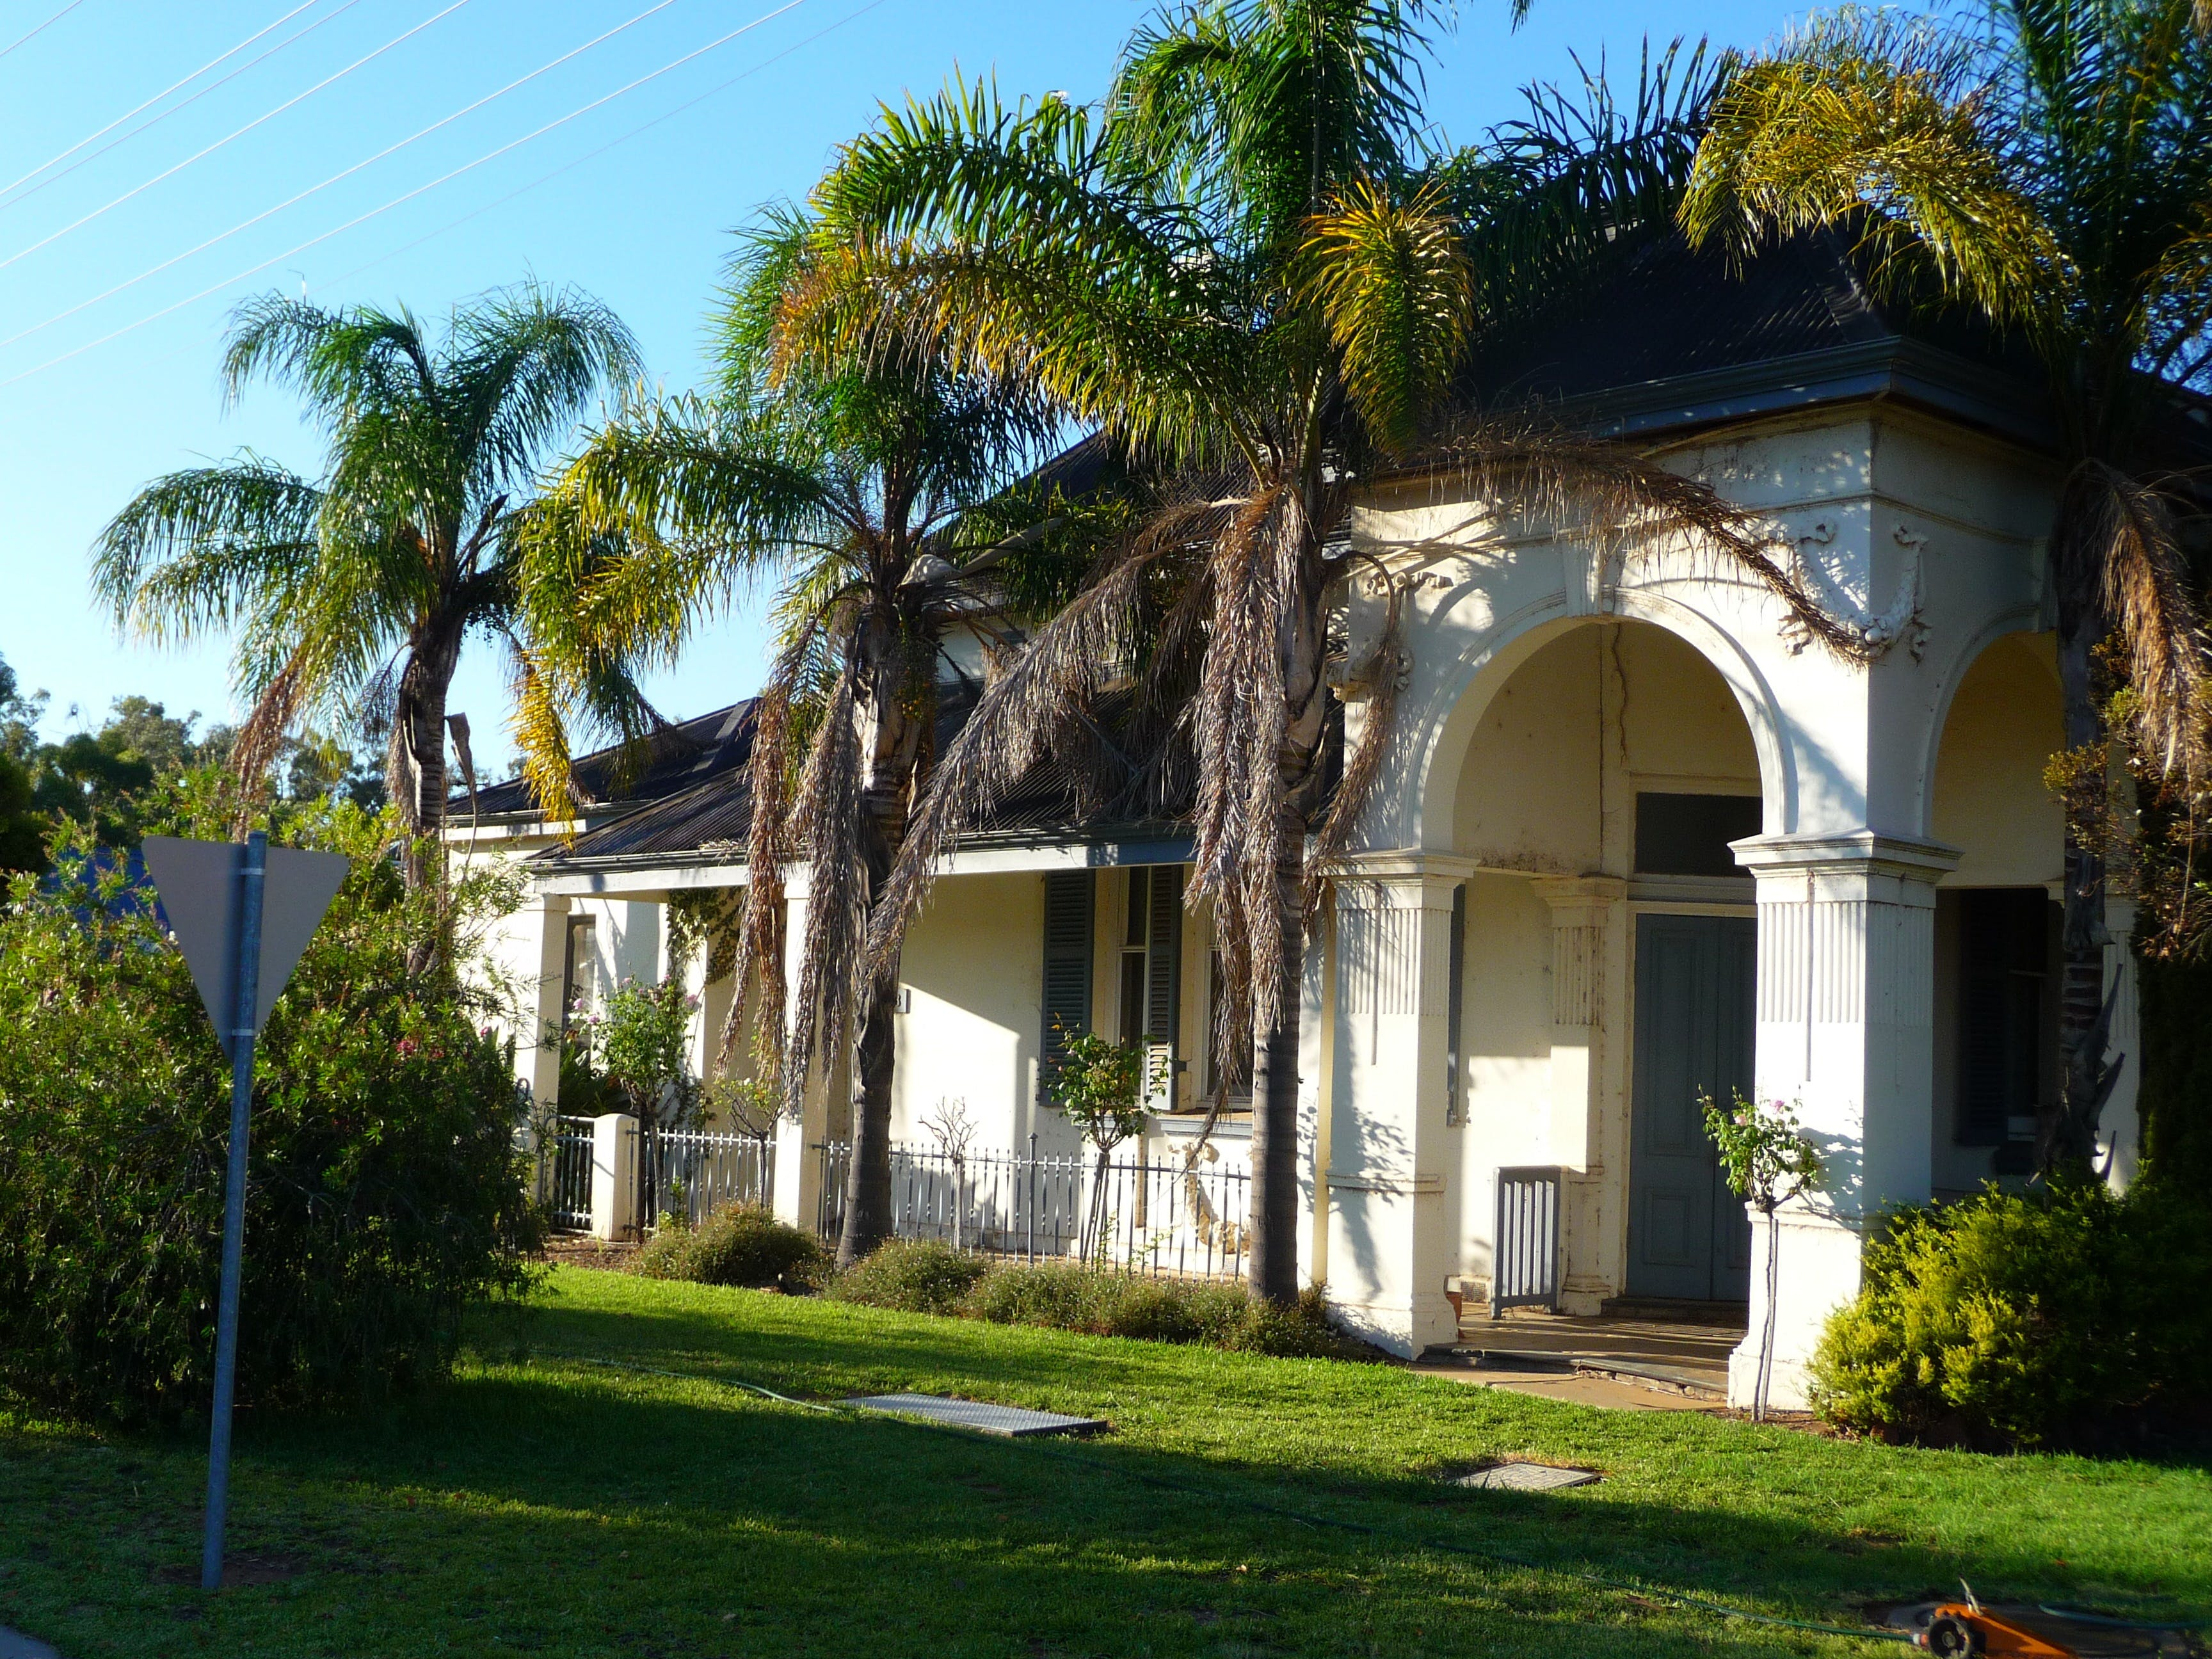 Balranald Heritage Trail - Tourism Adelaide